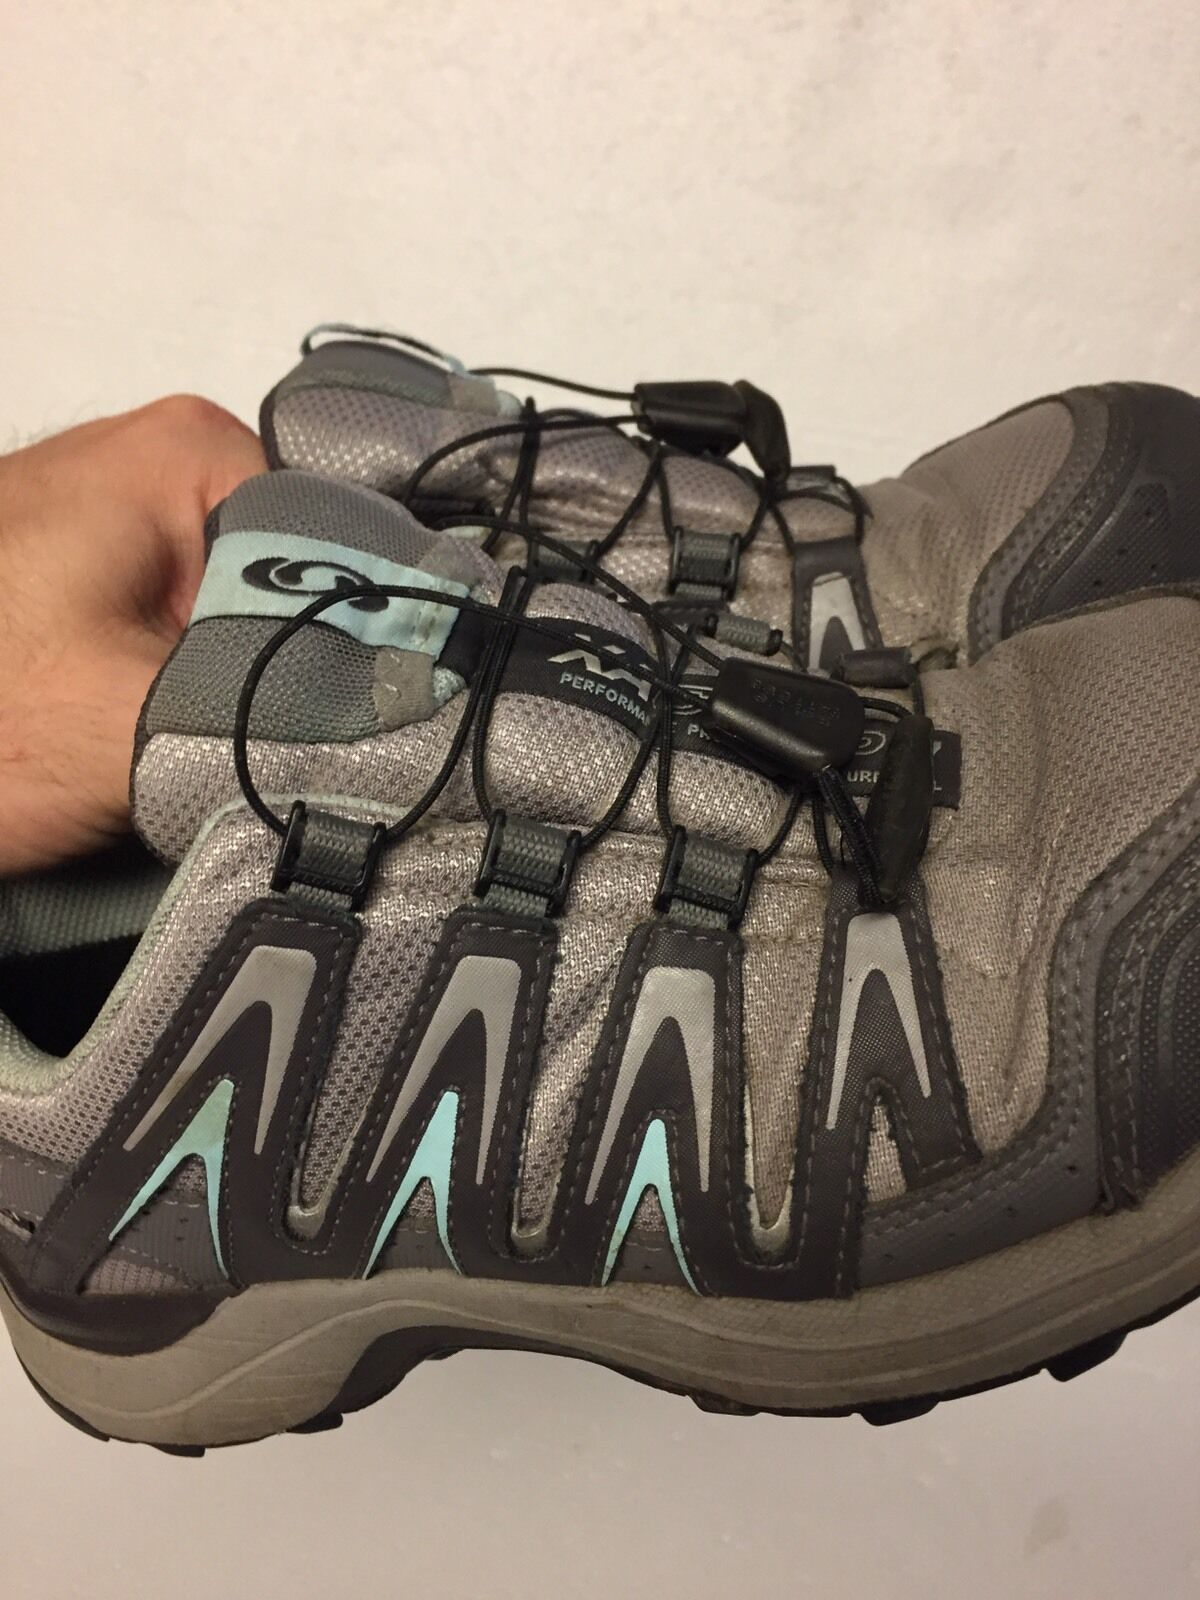 Women's Salomon XA Comp 7 Trail-Running Hiking Athletic Shoes Size 6.5 Gray Teal image 5